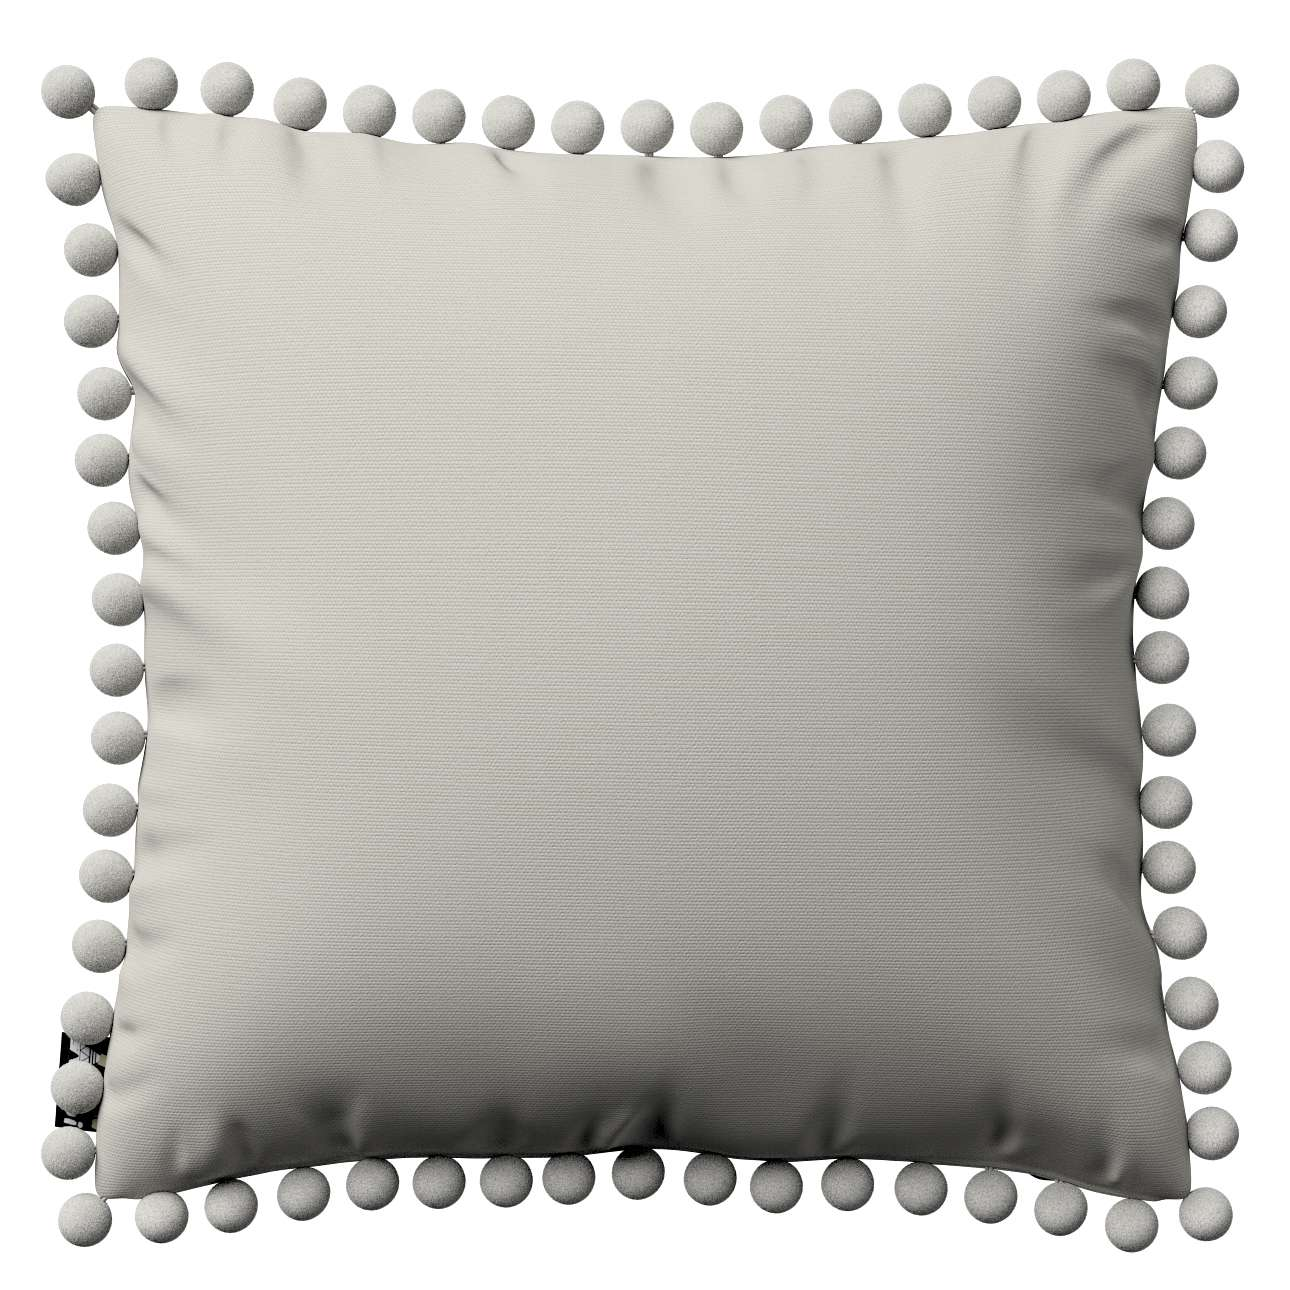 Daisy cushion covers with pom poms in collection Cotton Story, fabric: 702-31